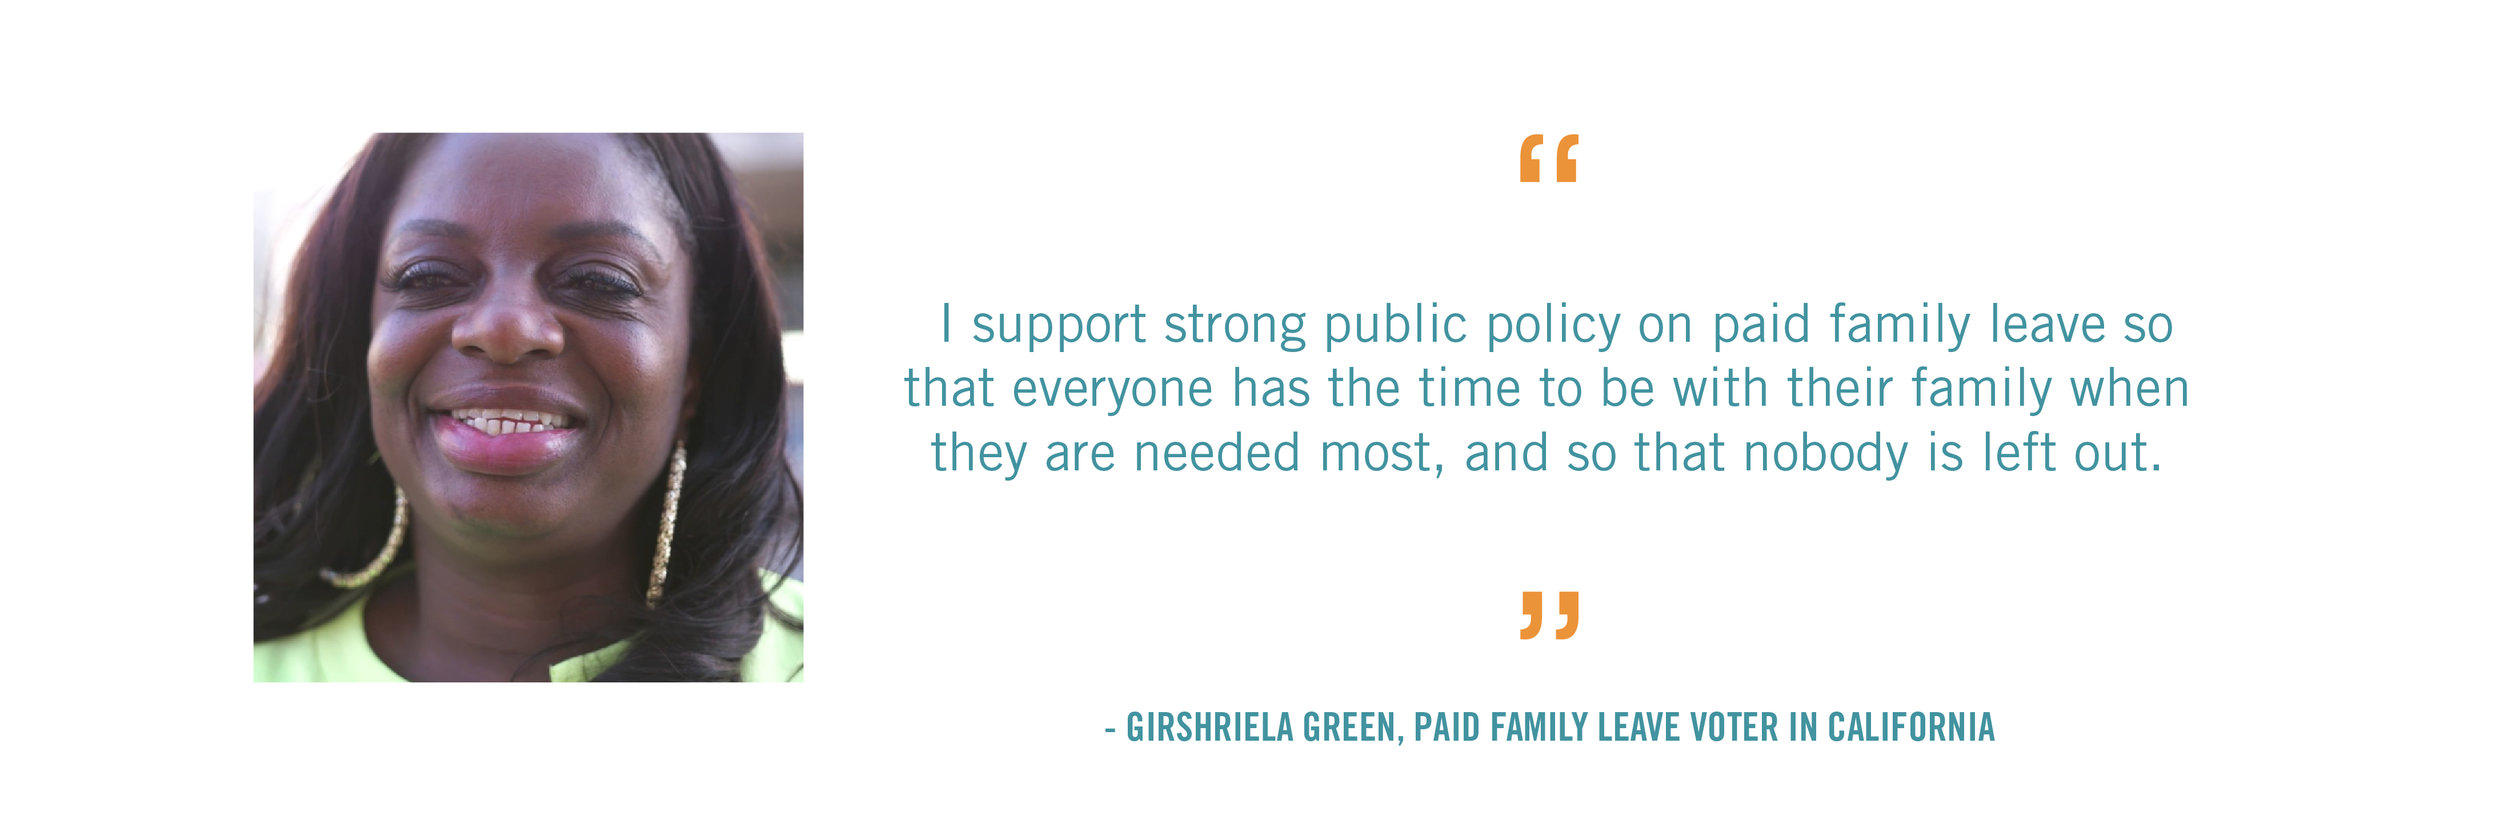 I support strong public policy on paid family leave so that everyone has the time to be with their family when they are needed most, and so that nobody is left out.  - Girshriela Green, Paid Family Leave Voter in CALIFORNIA